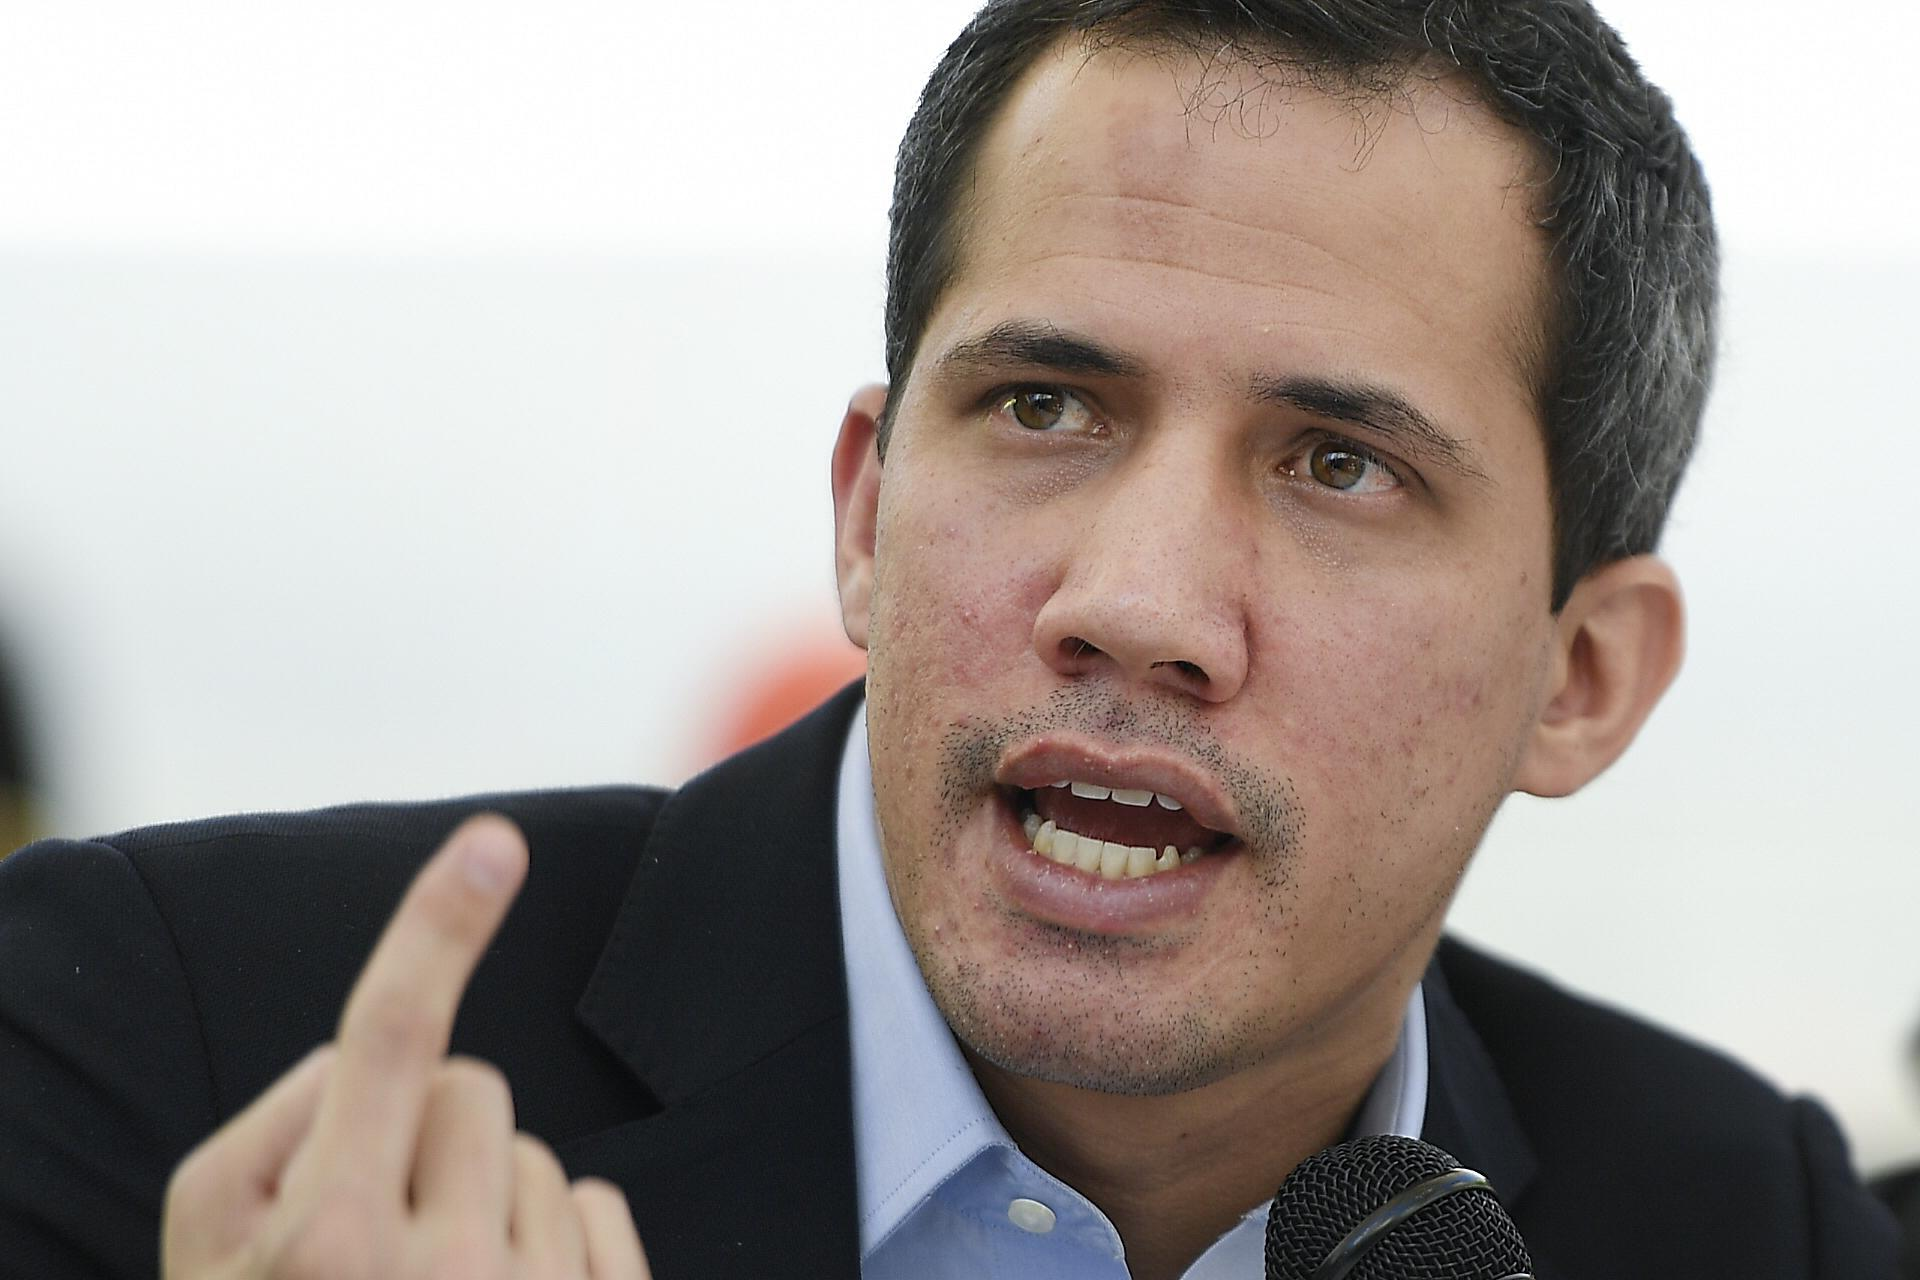 Venezuela opposition leader calls for dialogue with Maduro